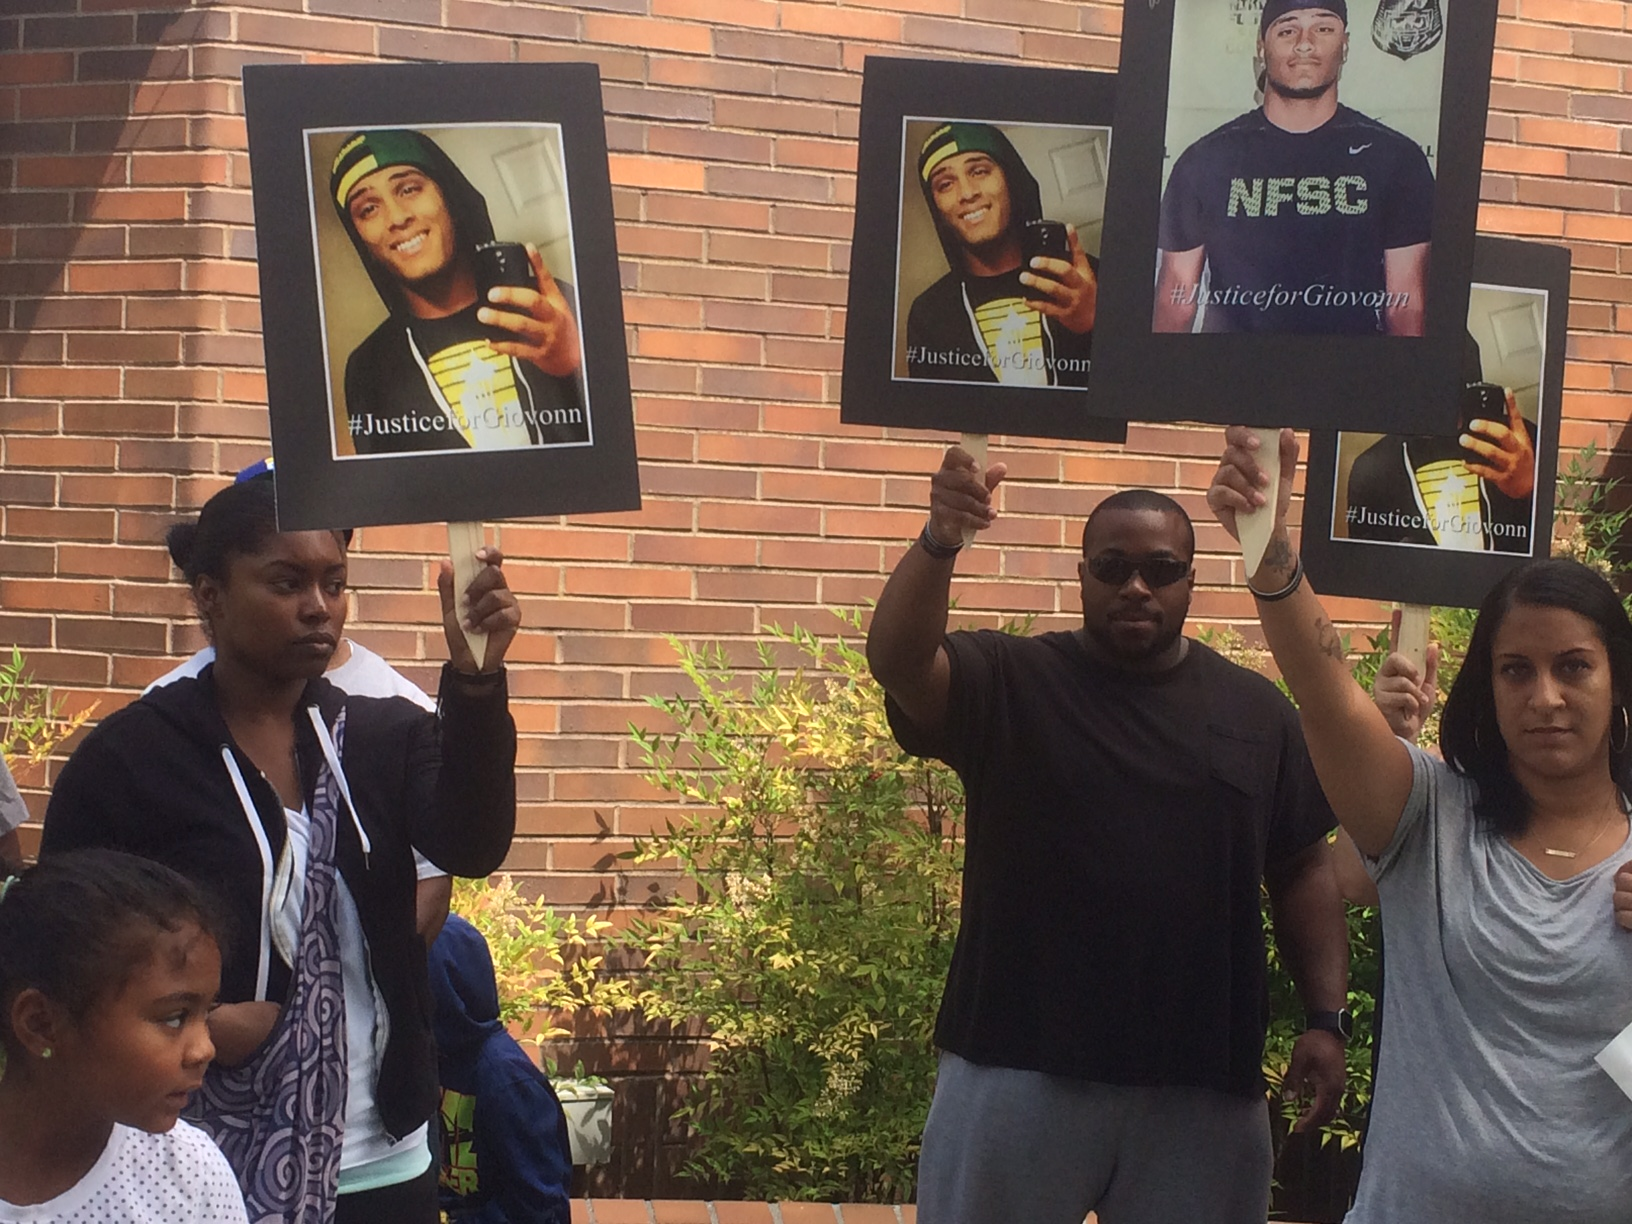 Family and friends demand justice for loved one slain by cops in Kent, Wa.